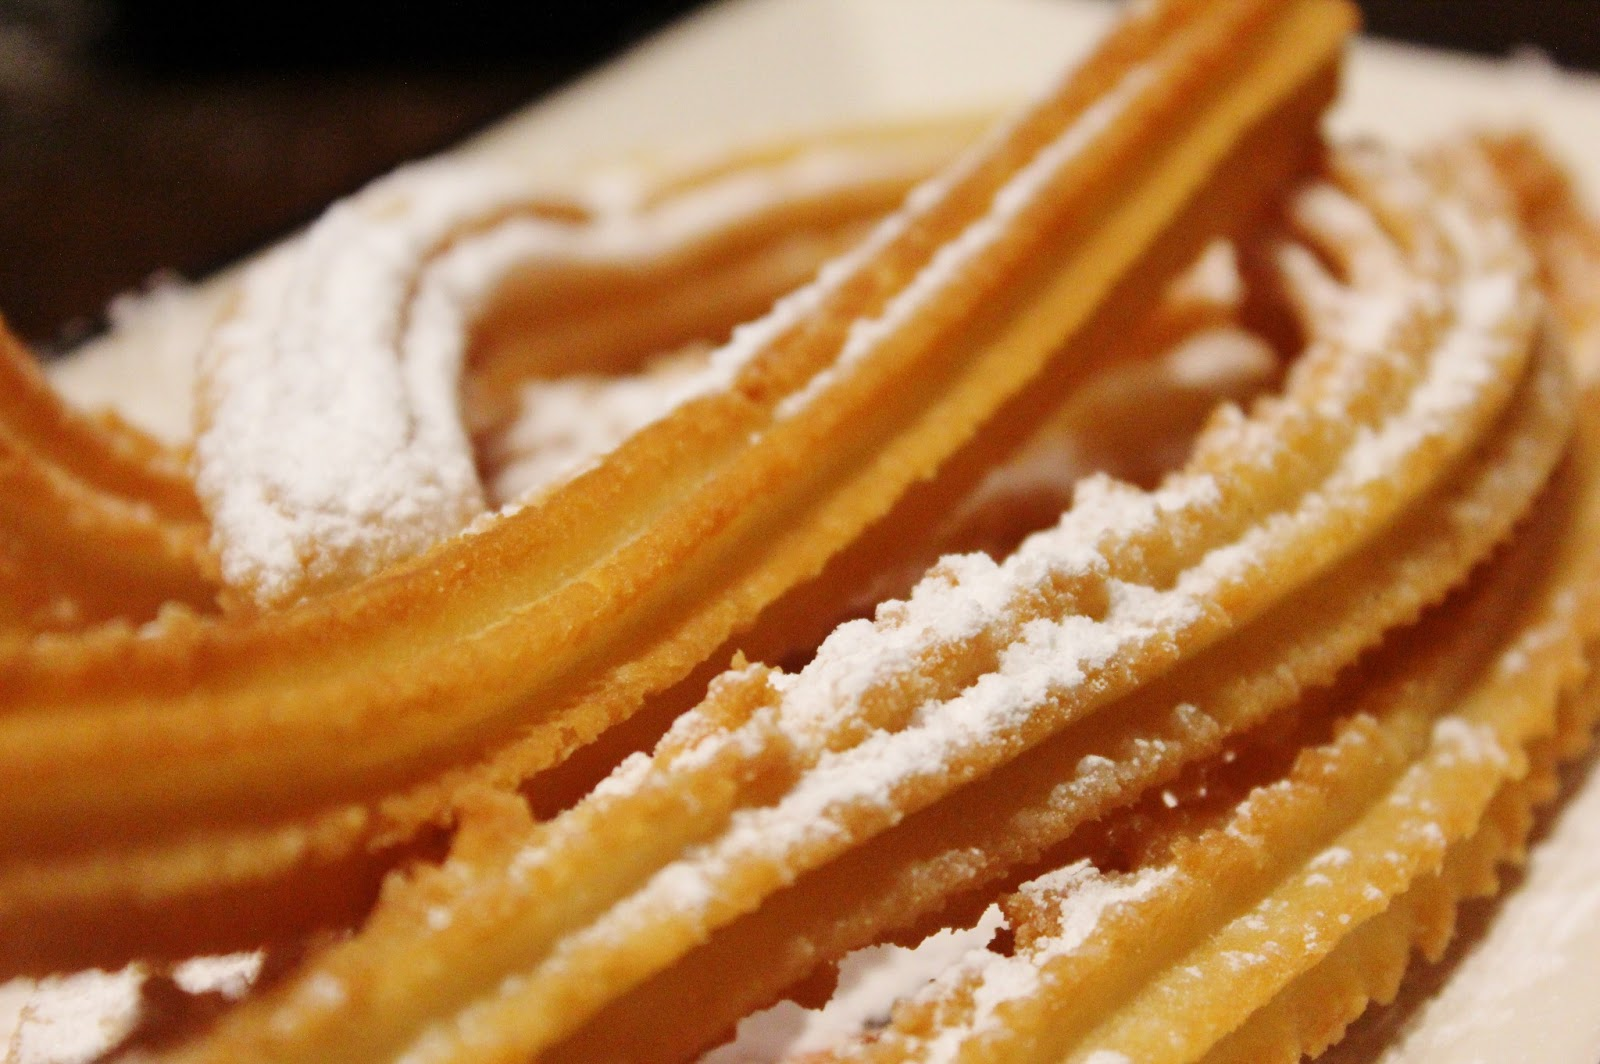 ... for san churro for way too long and let s just say that churros and